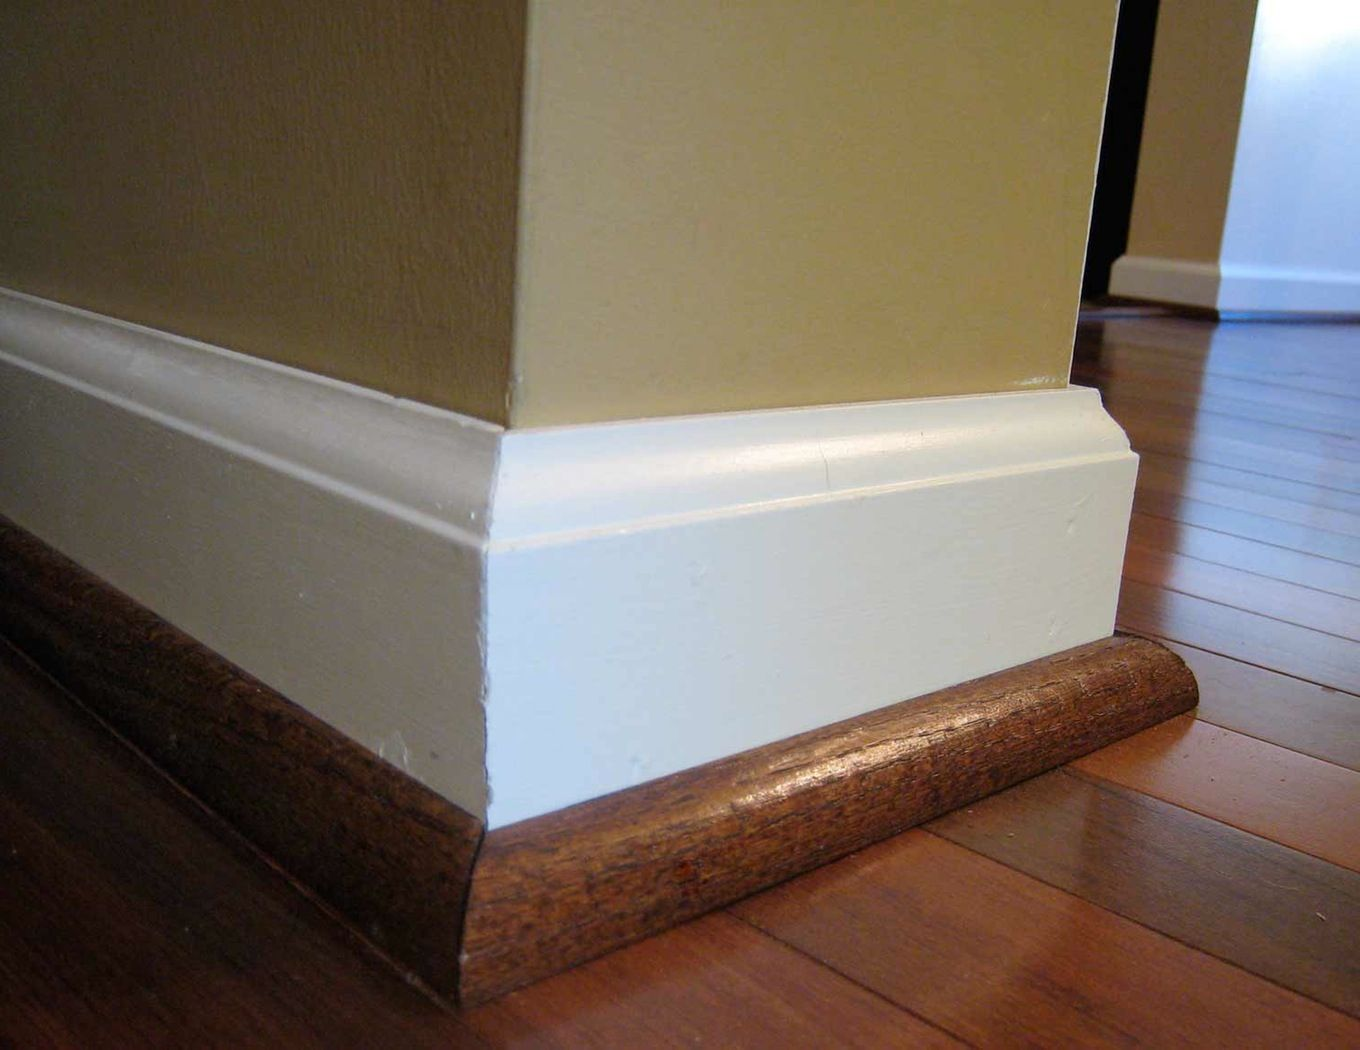 How to cut base molding around wall vent - Types Of Baseboard Molding 19470810